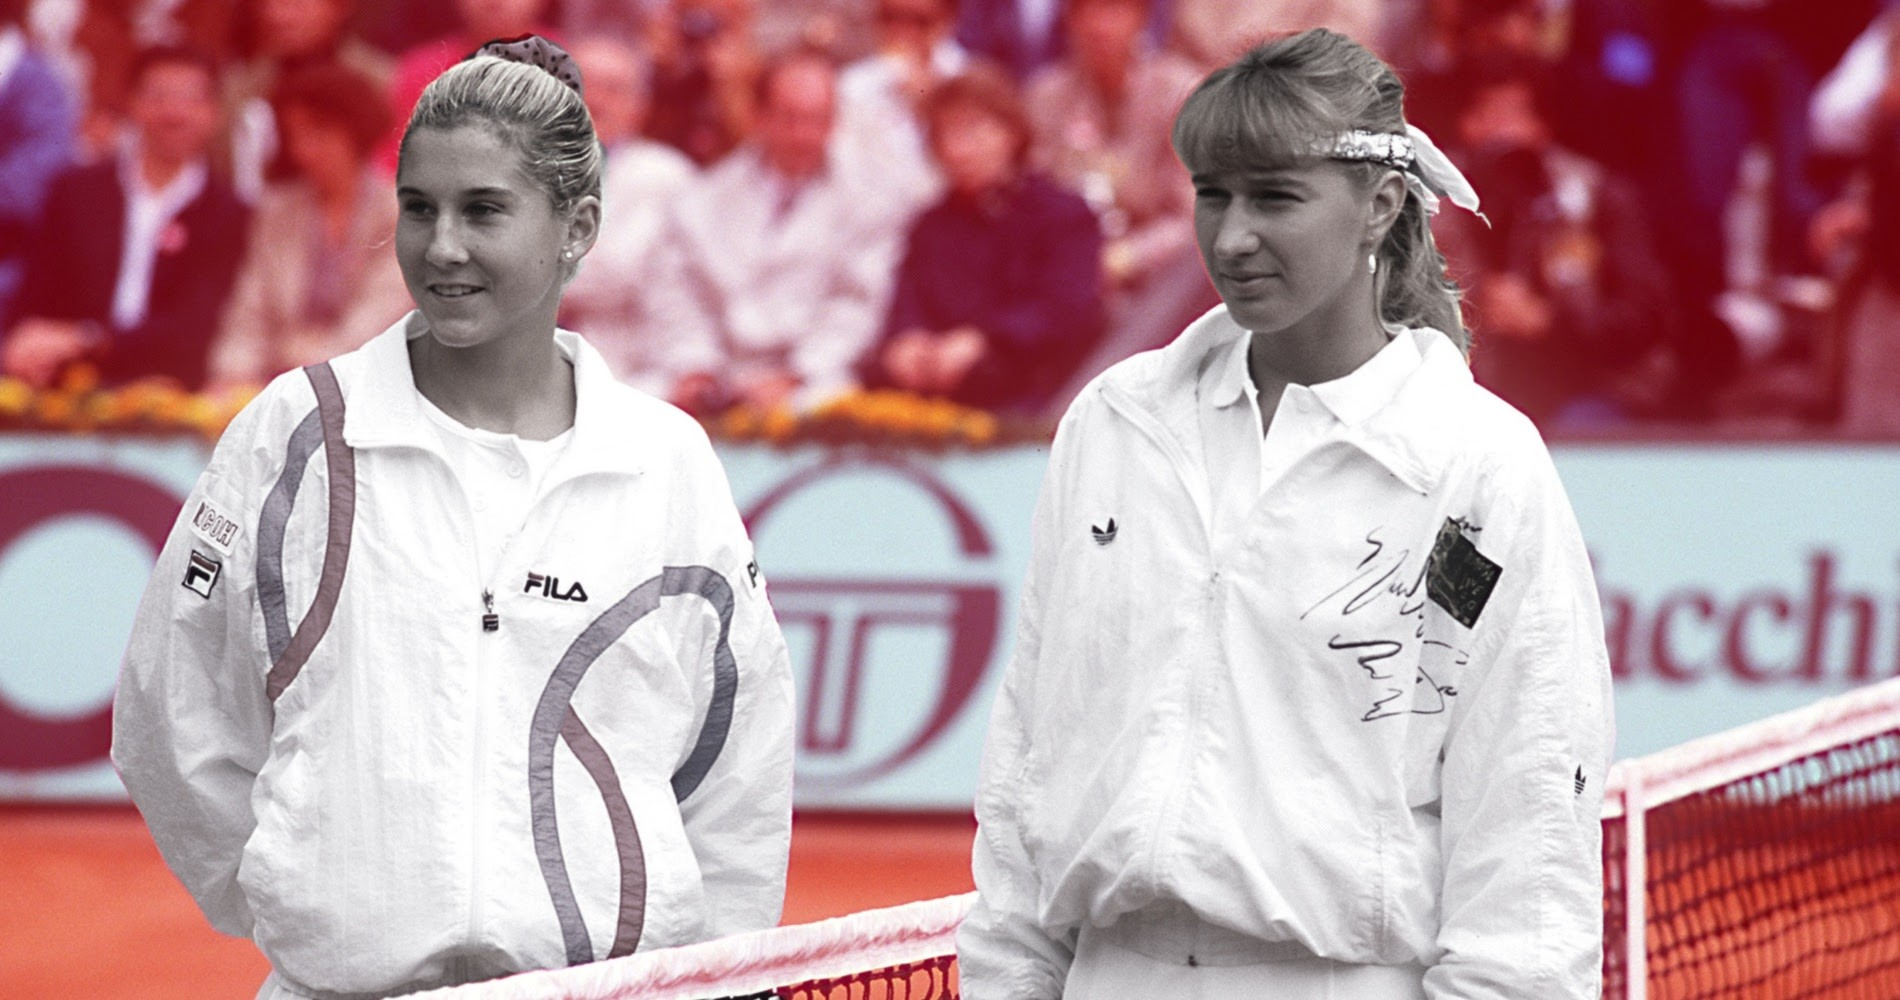 Monica Seles On This Day 9_6